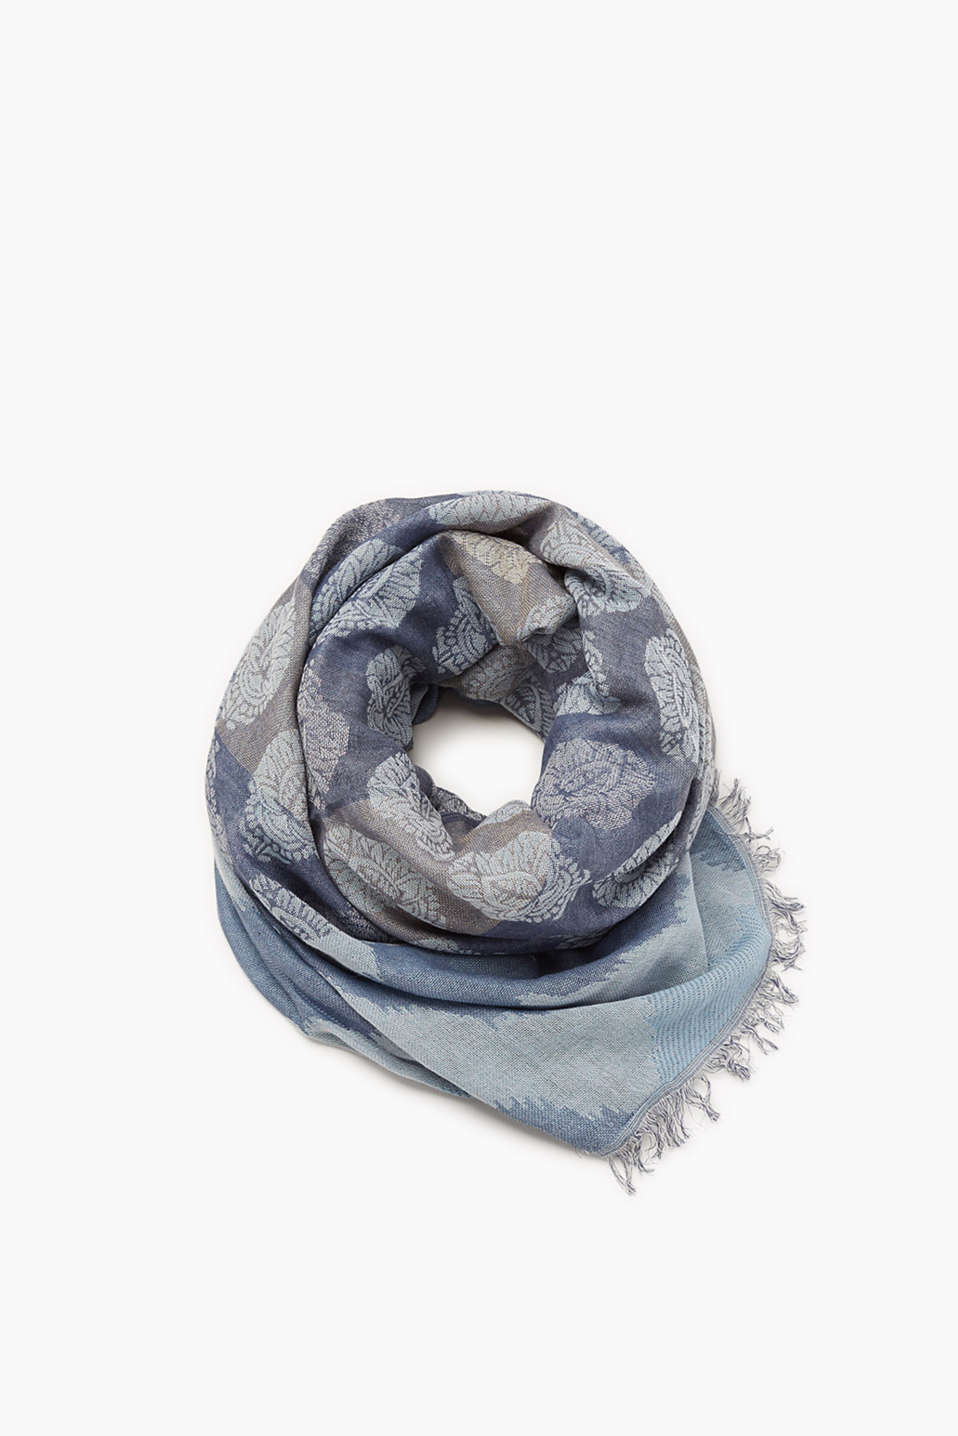 Esprit - Scarf with jacquard pattern, cotton blend